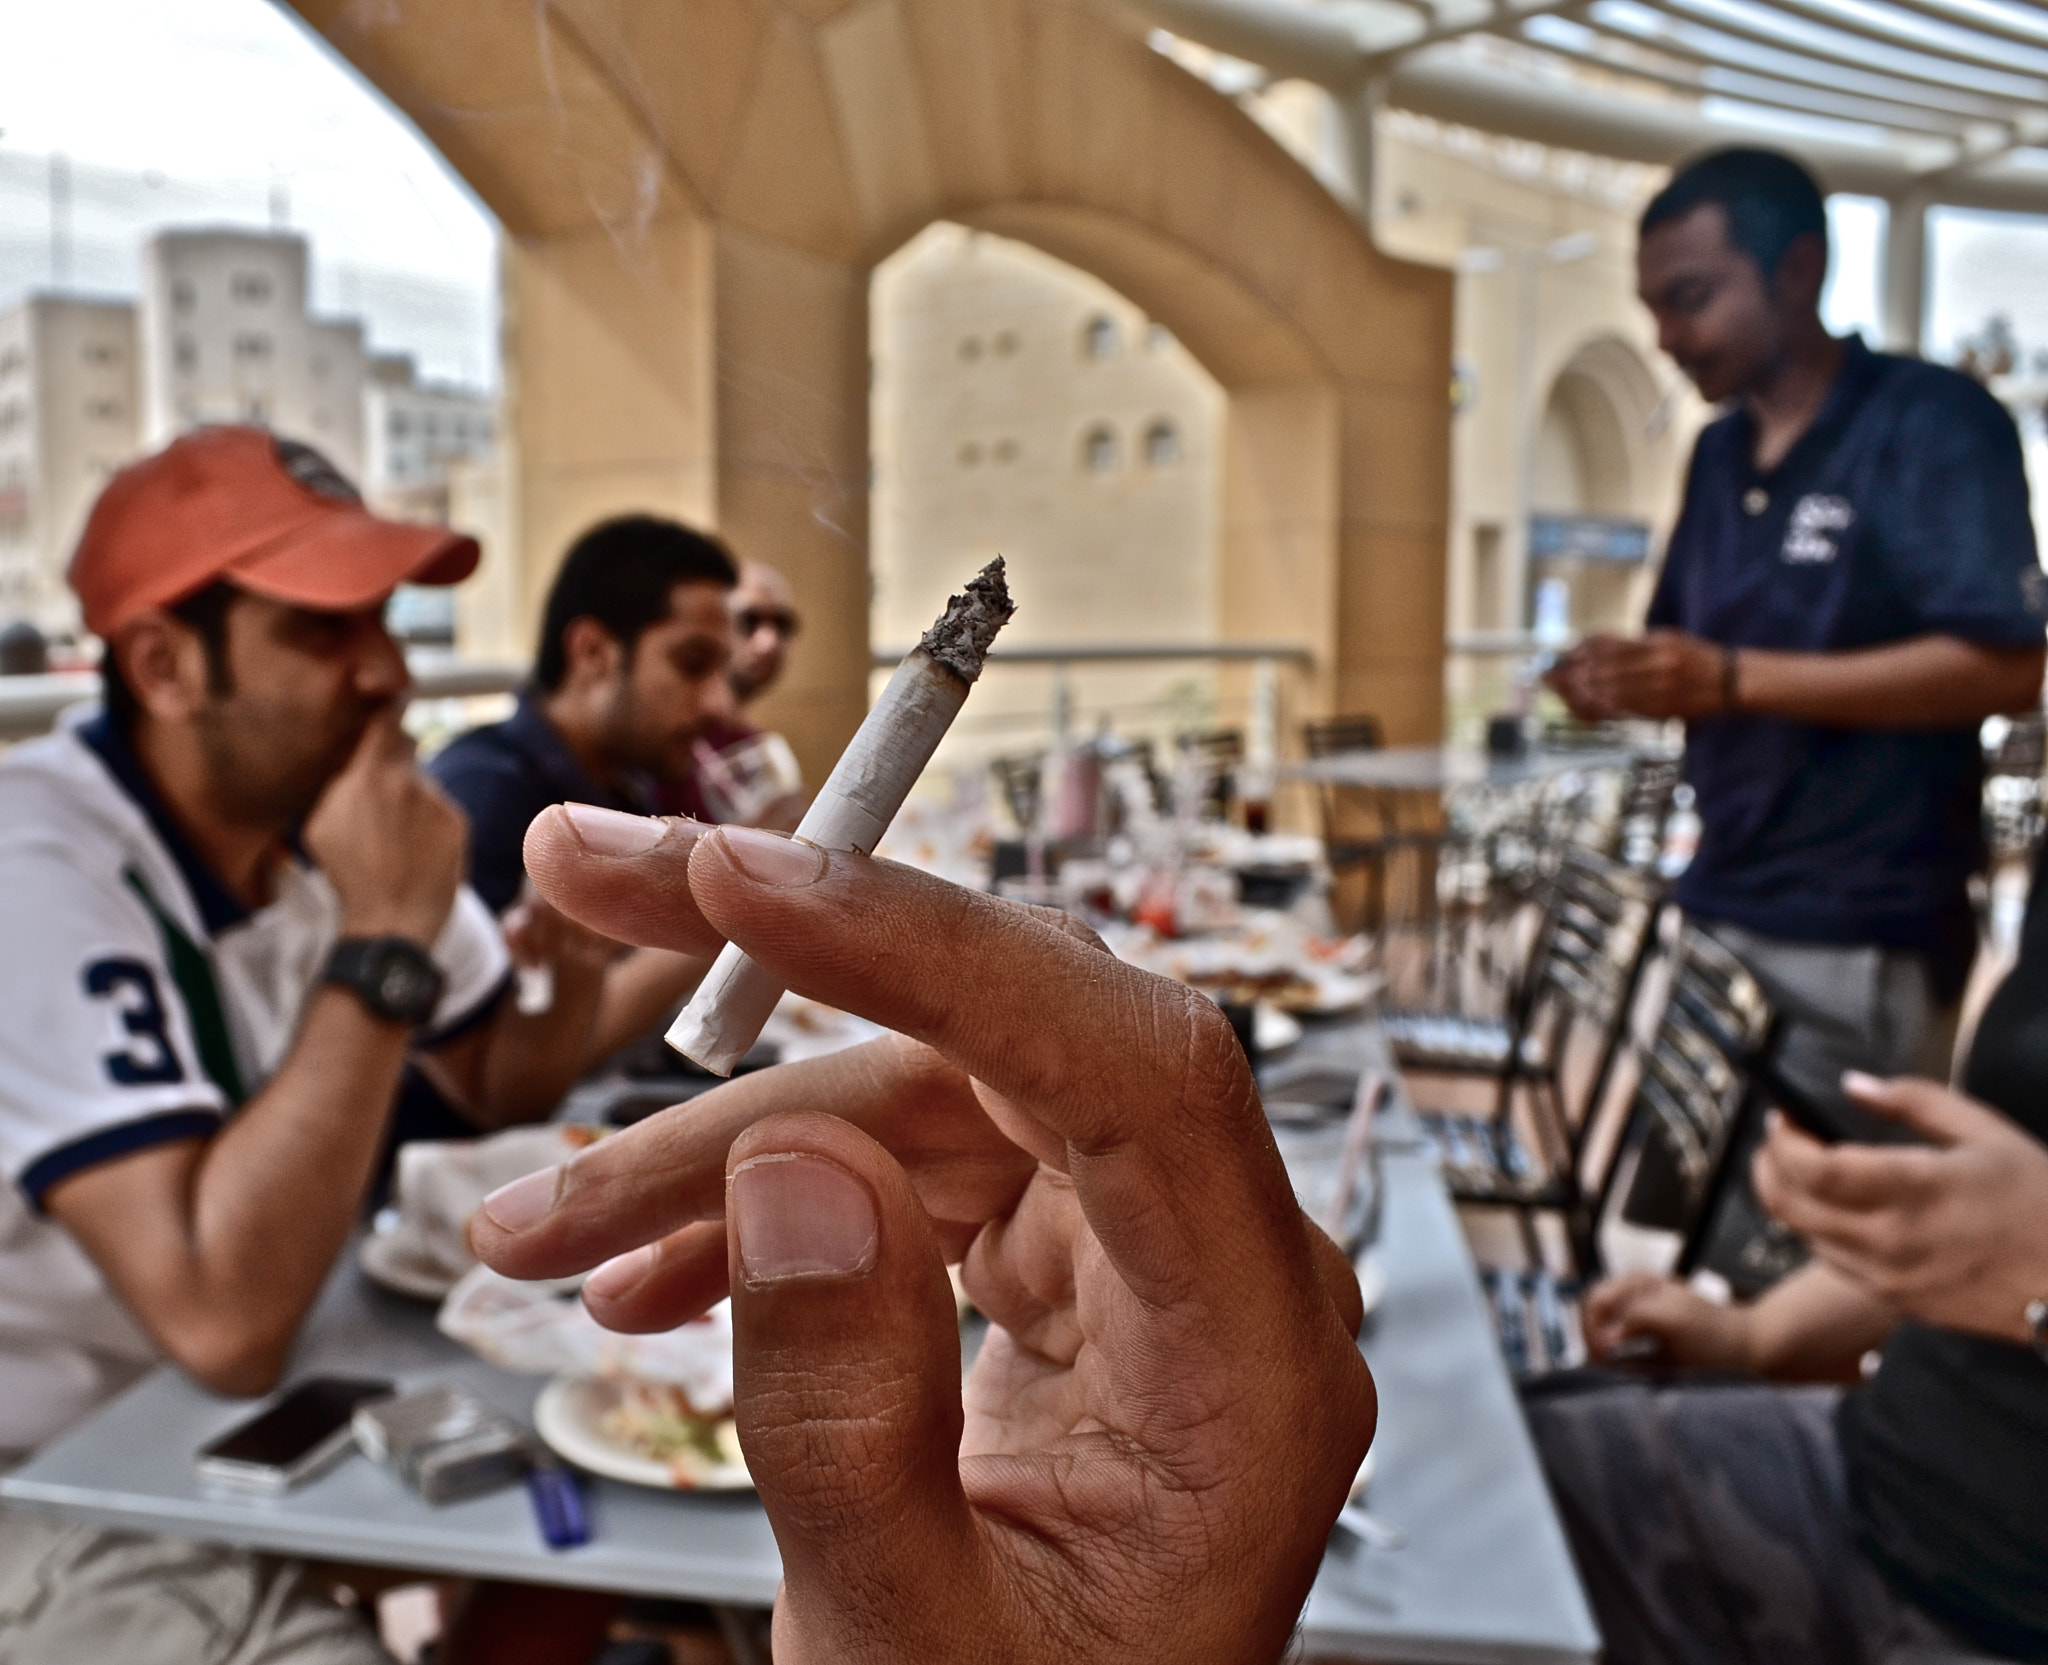 Photograph smoking after lunch  by abdullah fathel on 500px